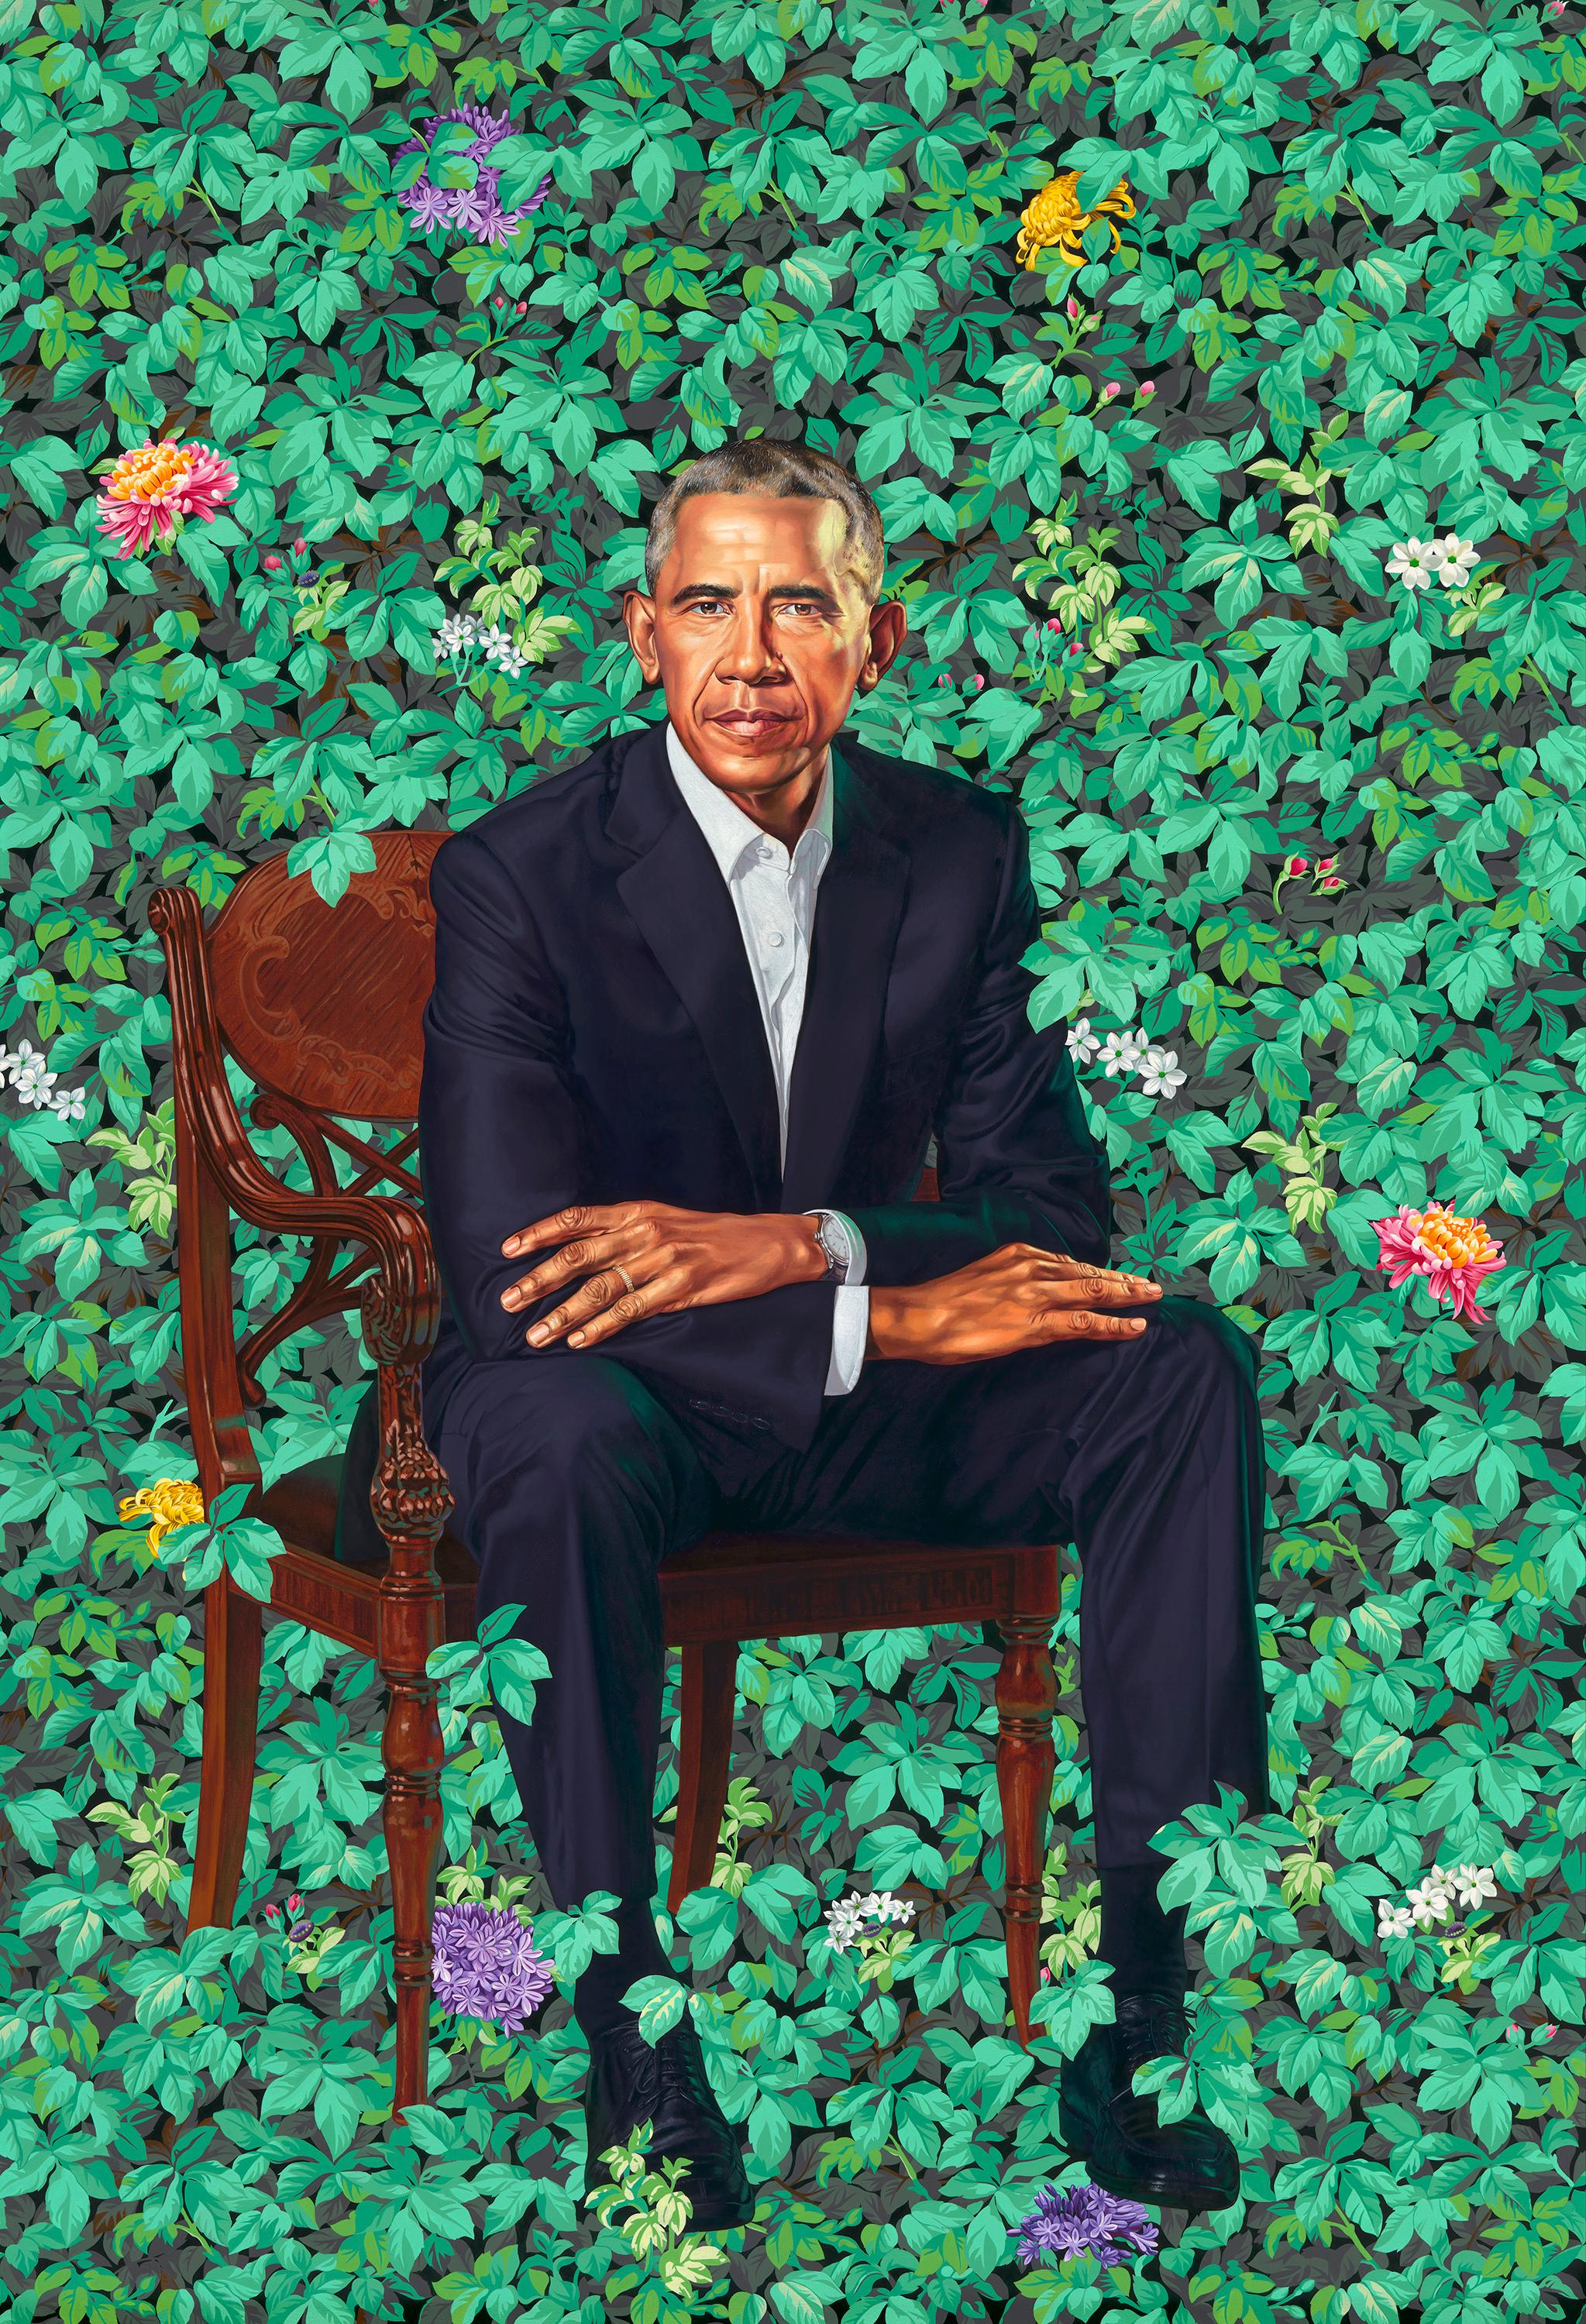 Artists Kehinde Wiley and Amy Sherald Capture the Unflinching Gaze of the President and First Lady